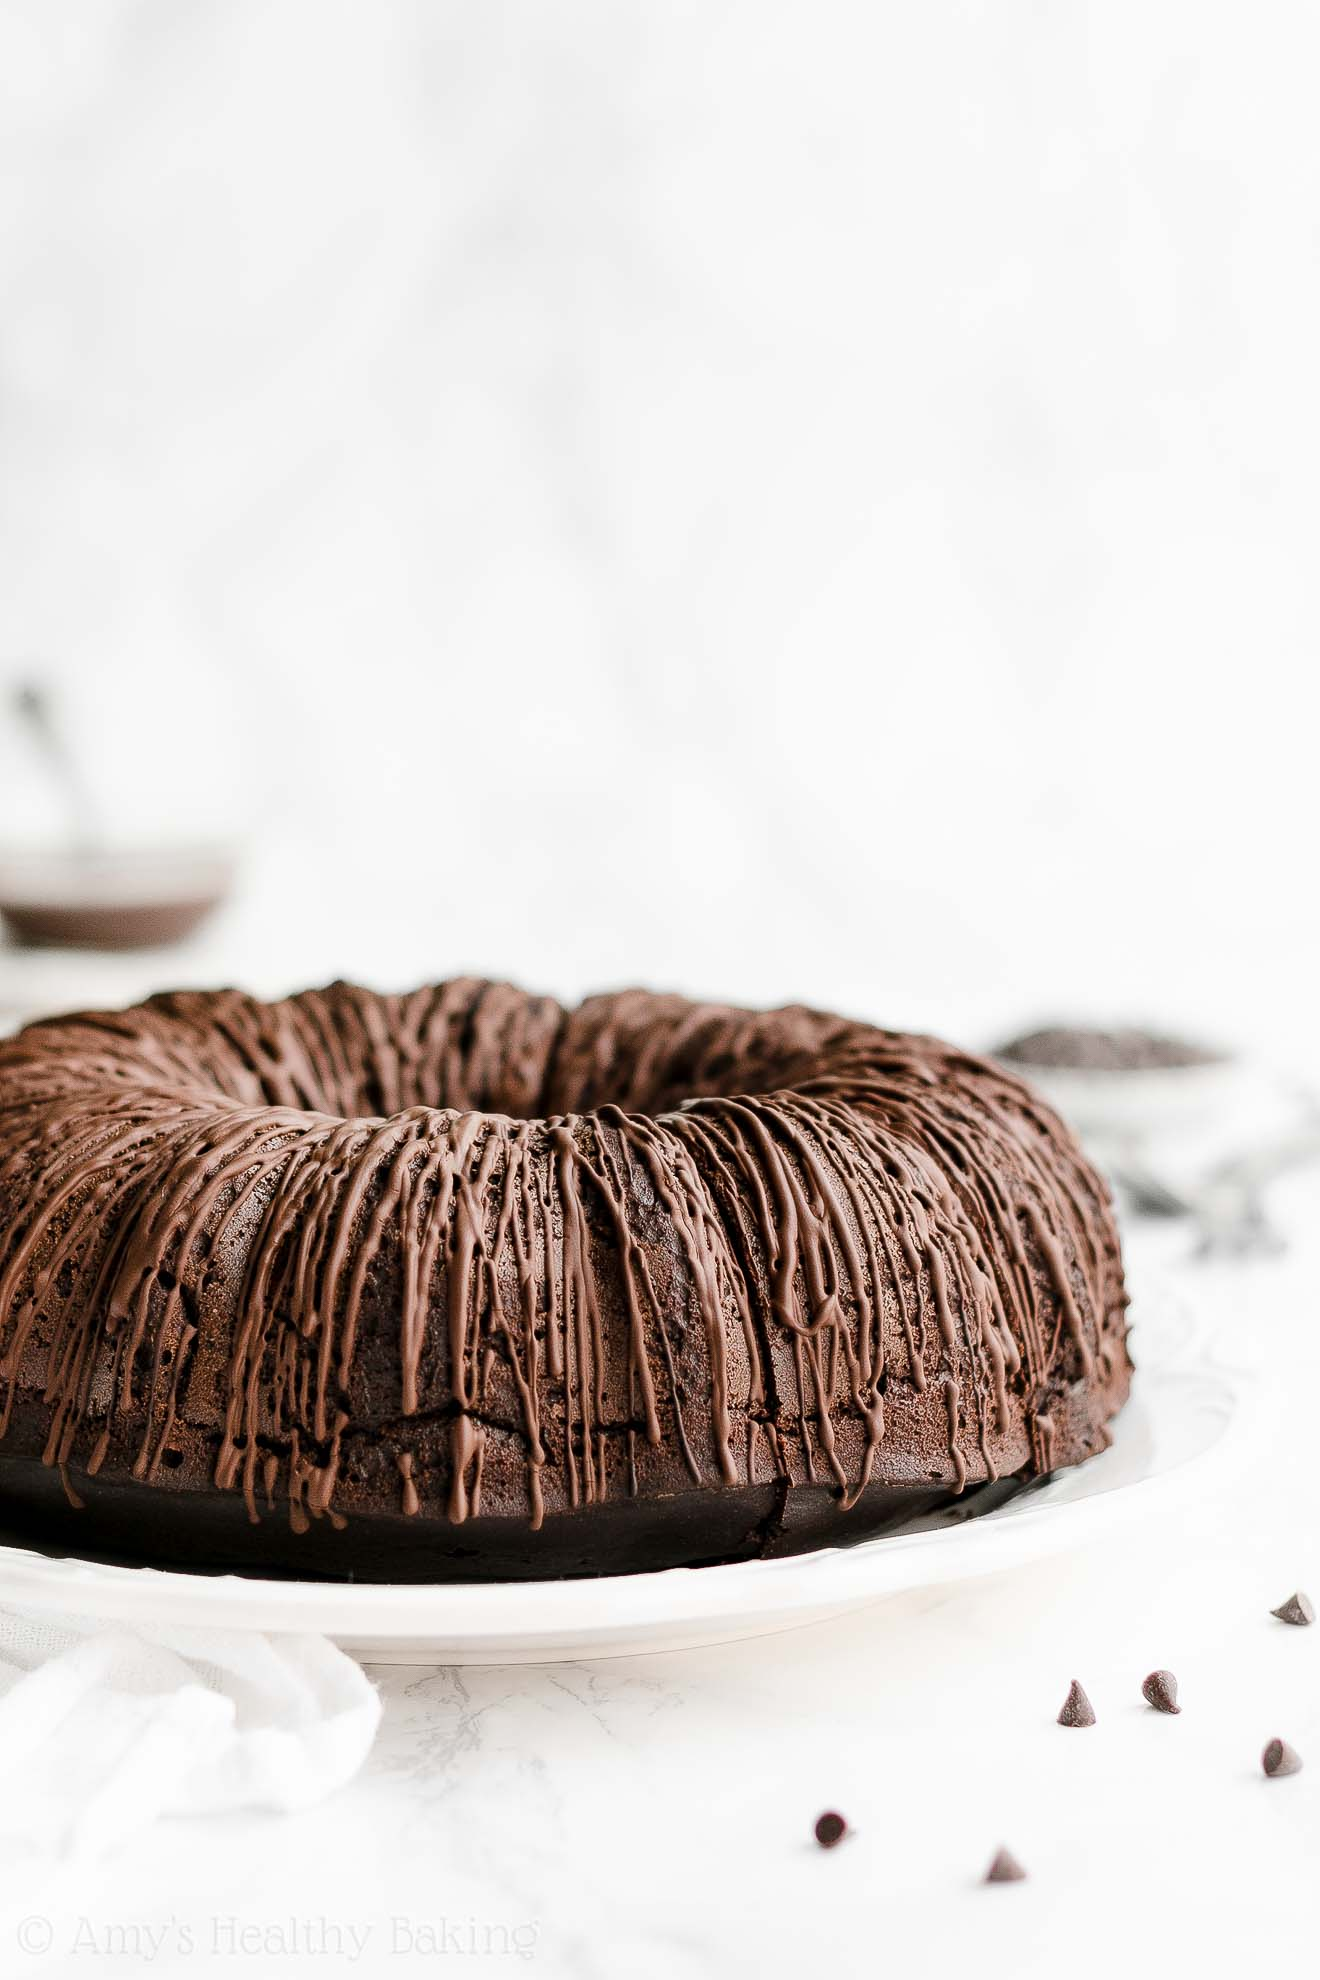 ULTIMATE Best Ever Easy Healthy Moist Low Fat Chocolate Fudge Bundt Cake